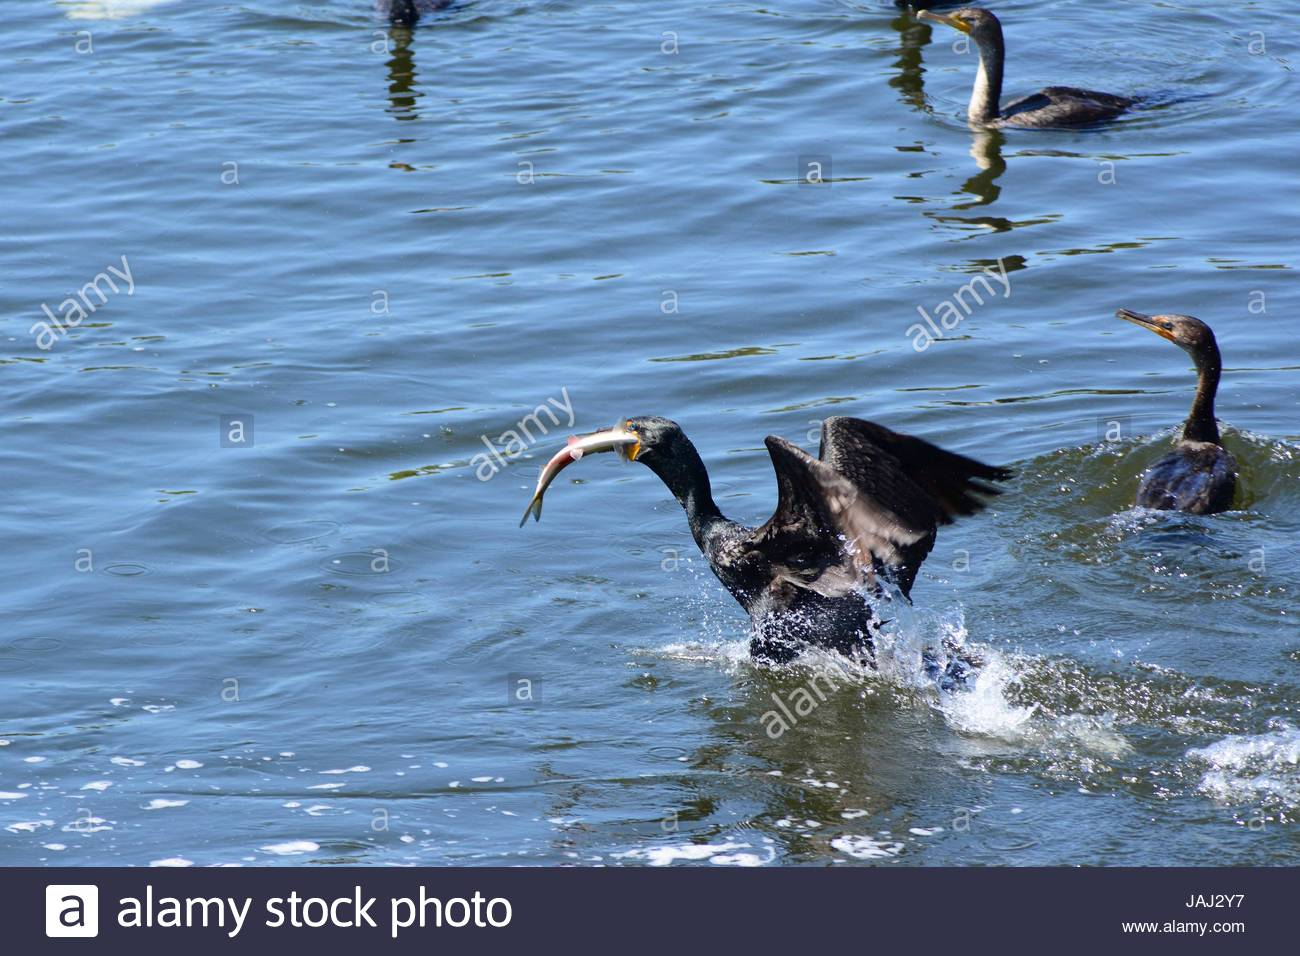 Double-crested cormorants hunting for alewives during their migration. - Stock Image